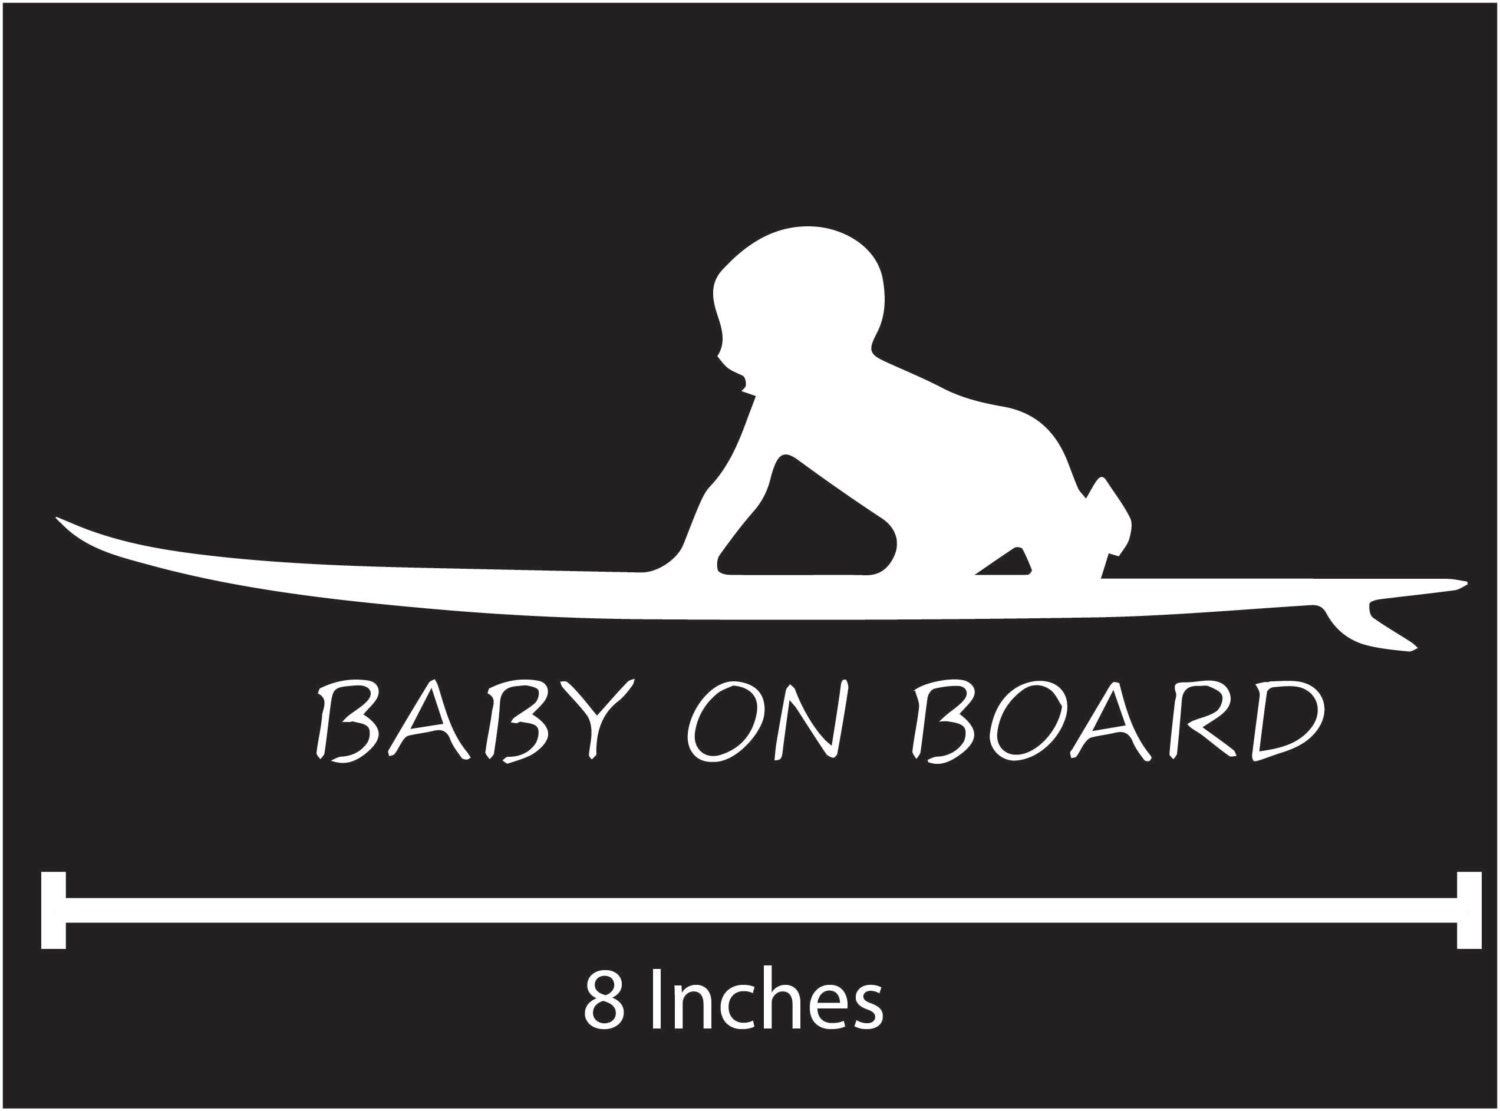 Surfboard Baby On Board Vehicle Decal Surfing Baby Safety